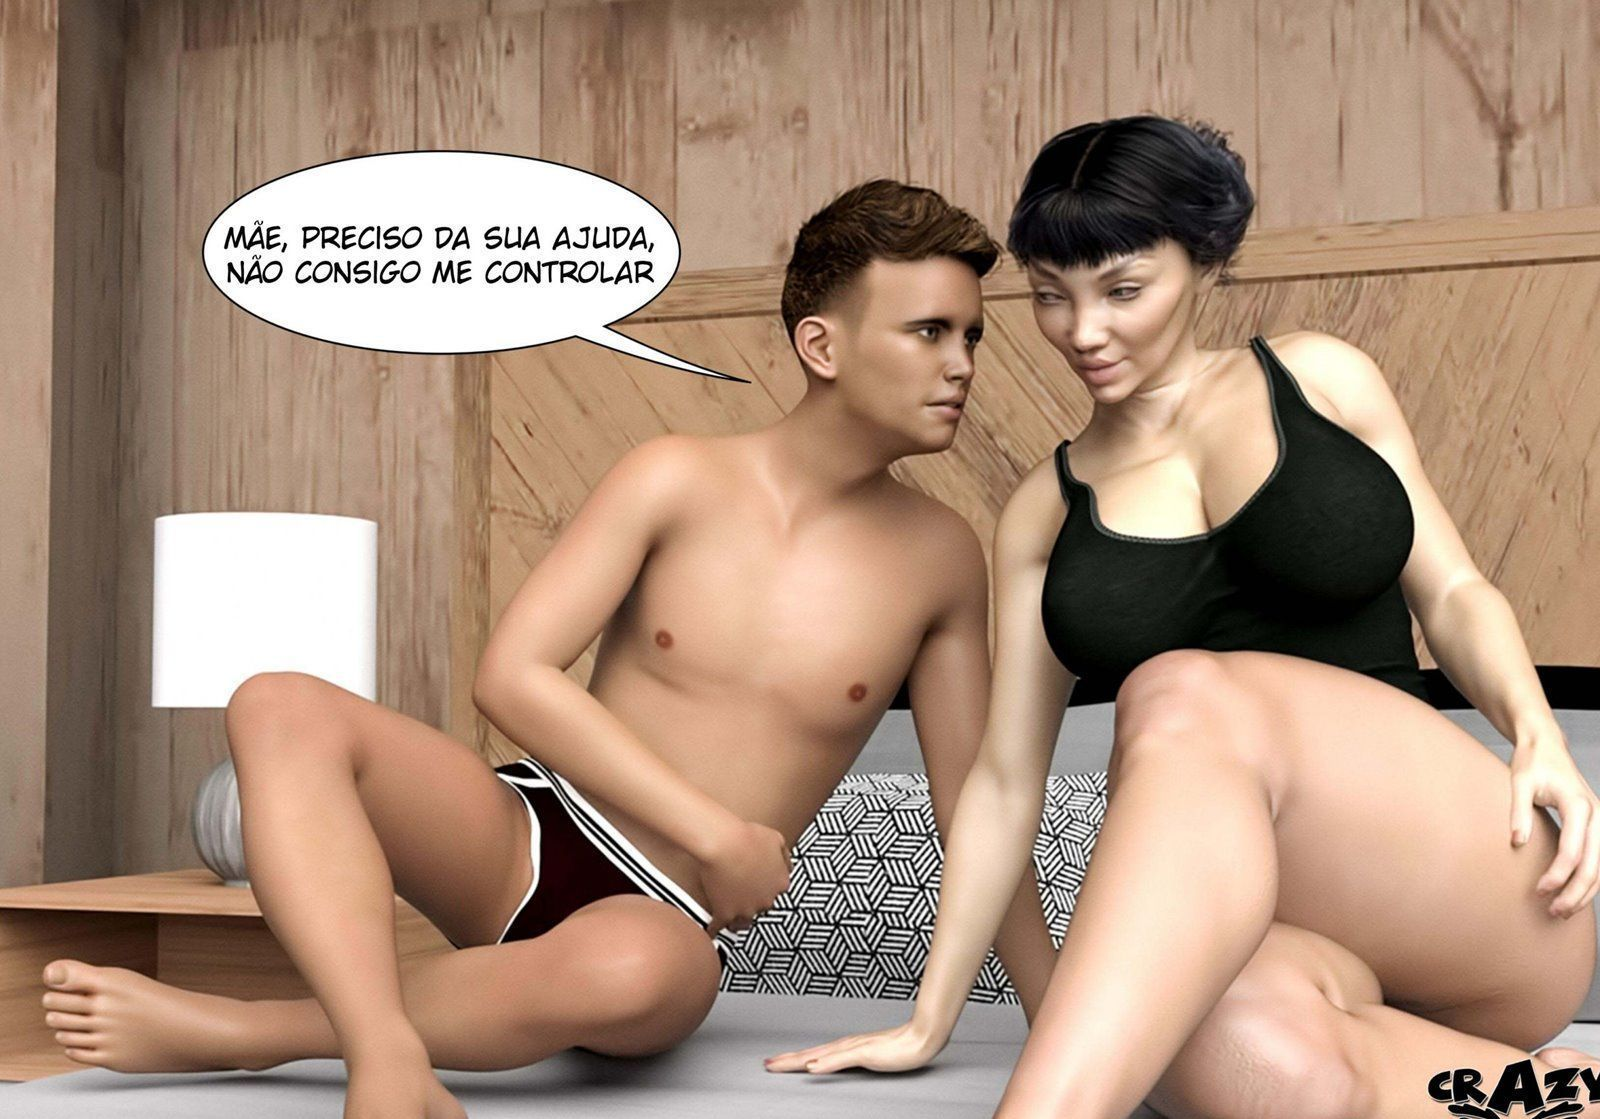 quadrinhos de sexo No Way Out 47